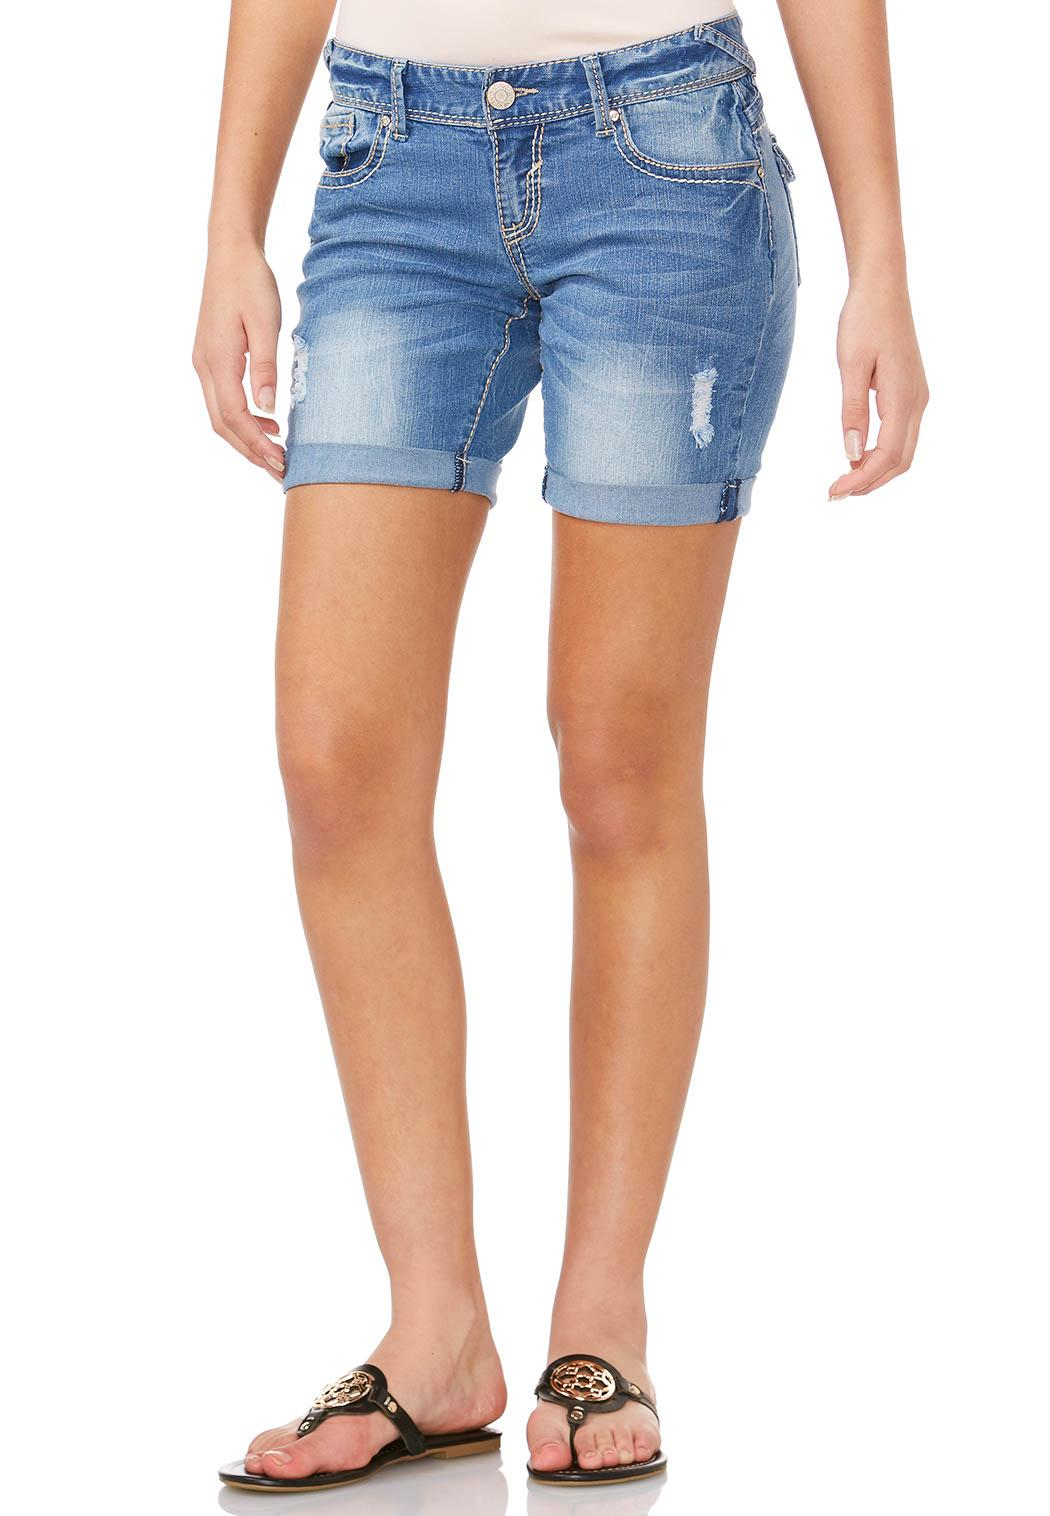 Cato Fashions Hours In Dover Delaware Embroidered Pocket Jean Shorts